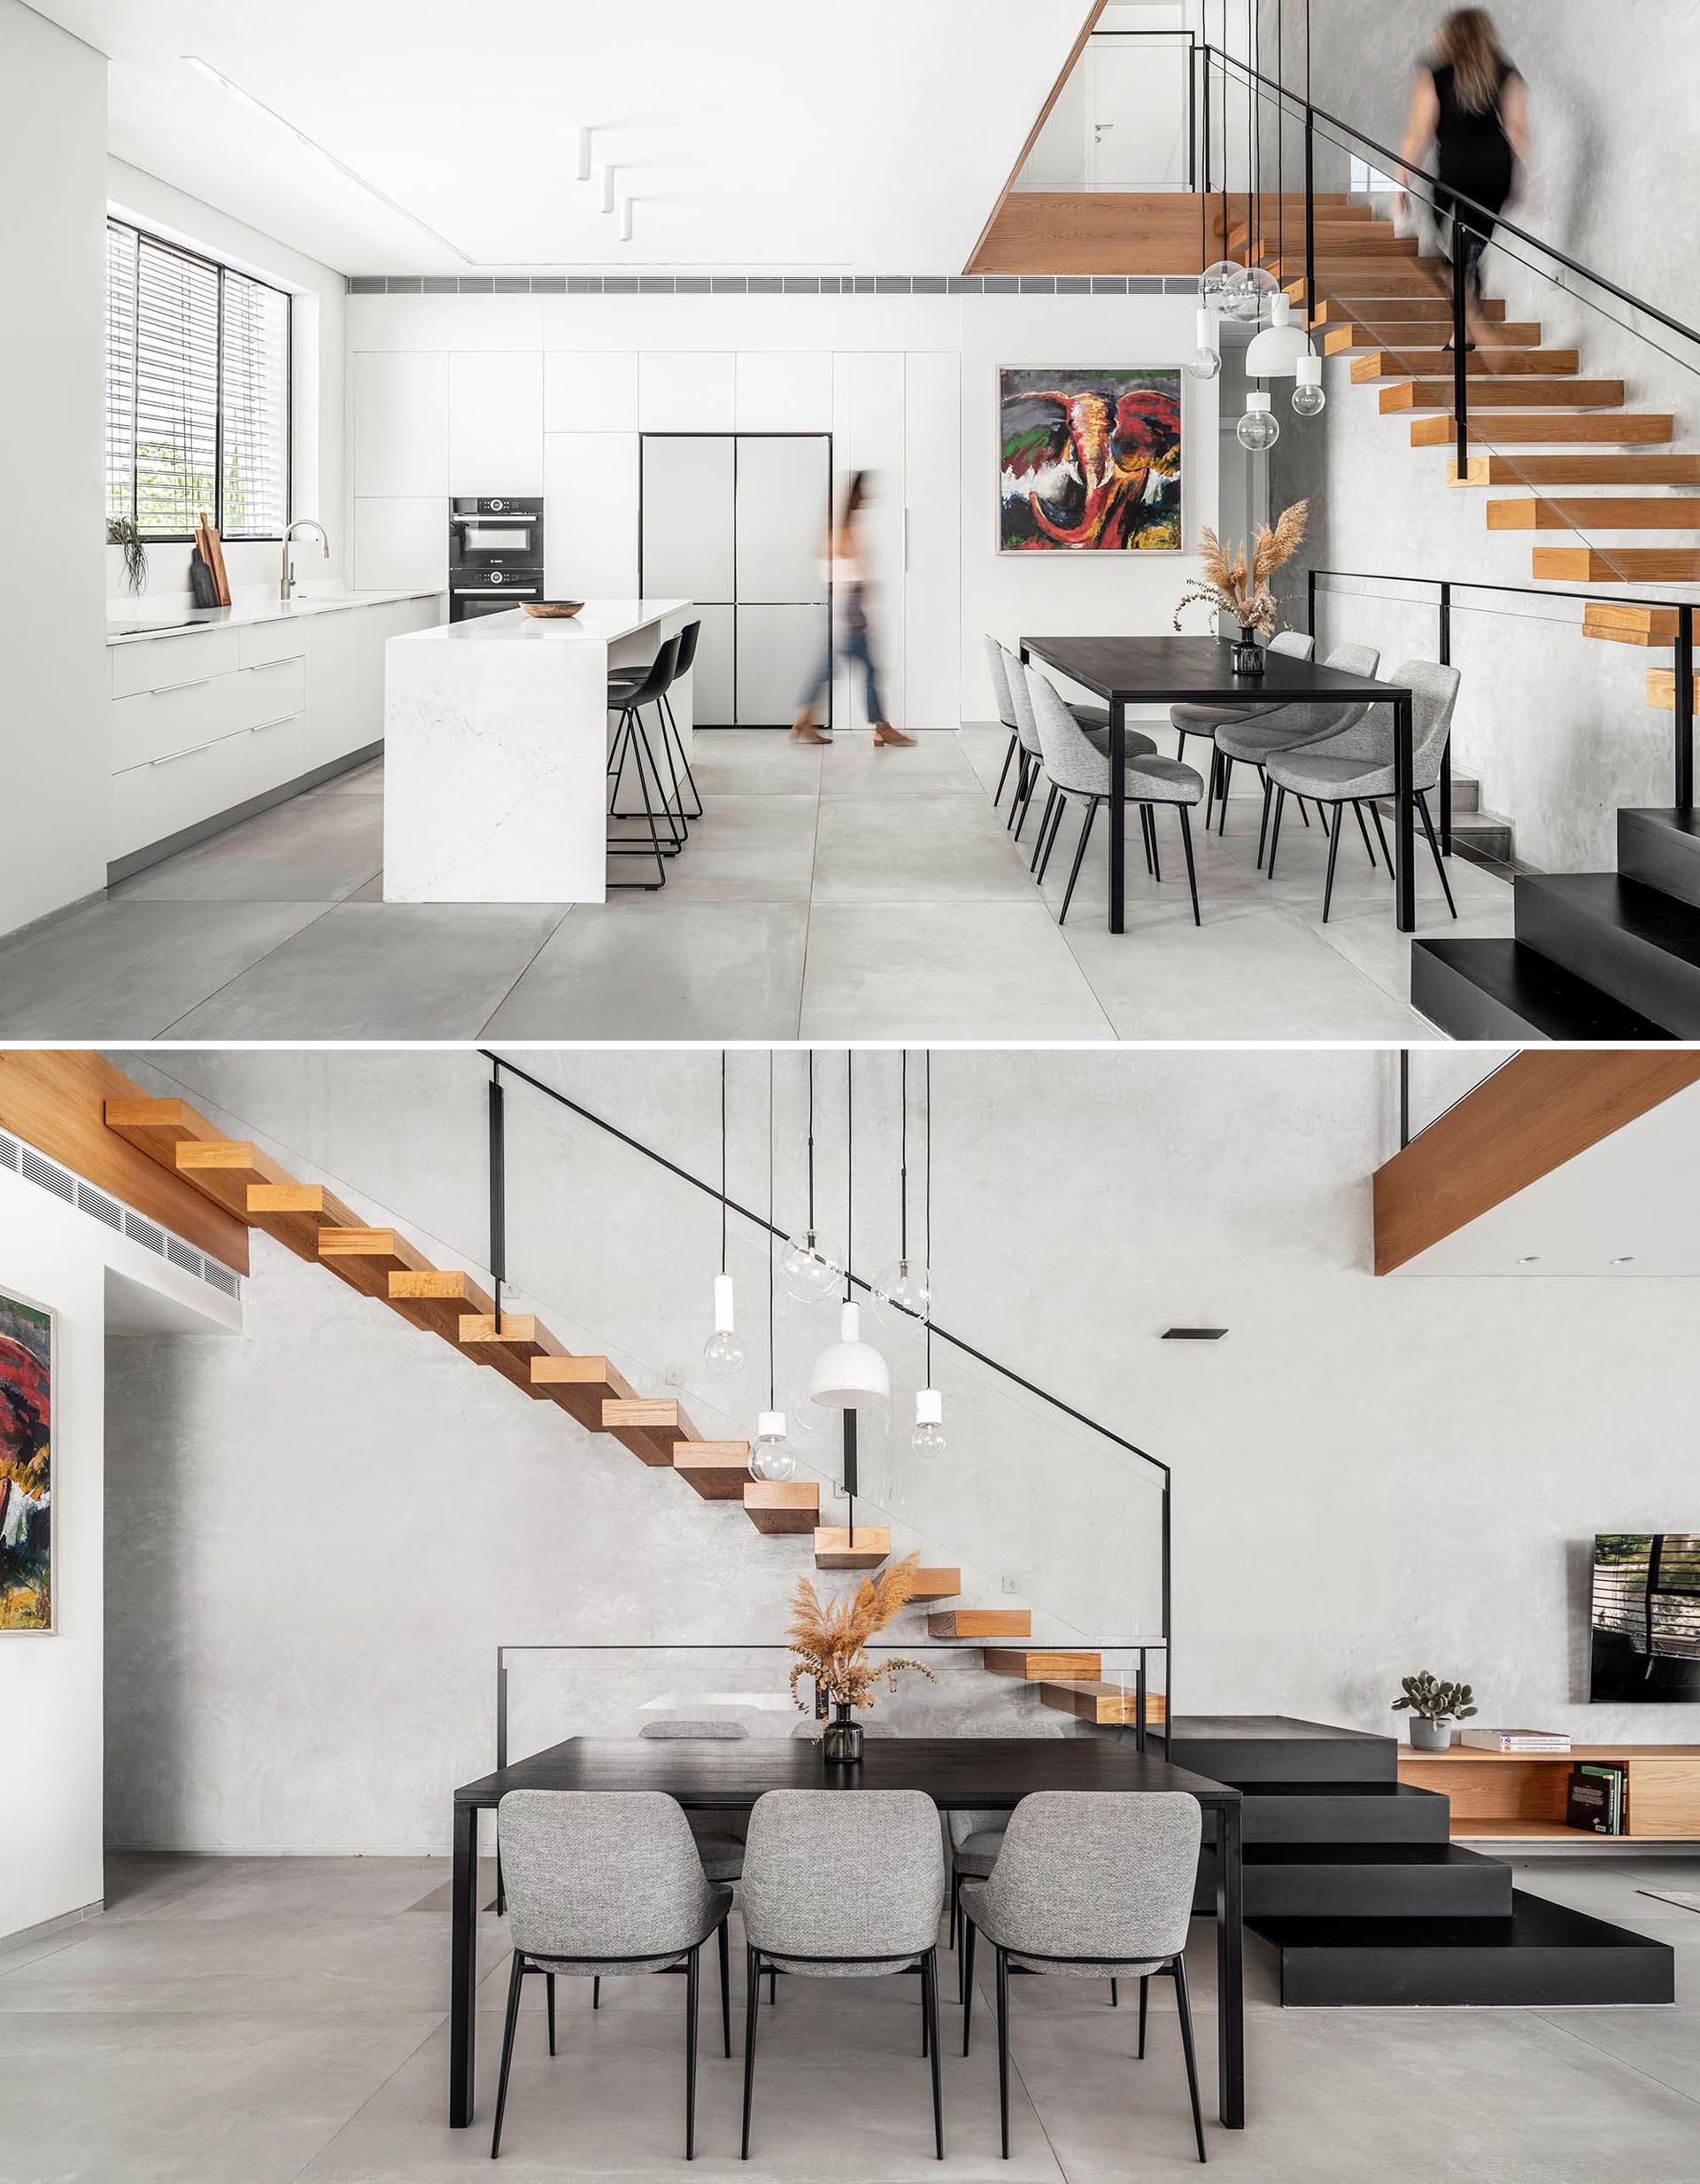 This modern dining room is furnished with a black table and light gray chairs, while white minimalist cabinets and drawers line the walls in the kitchen.